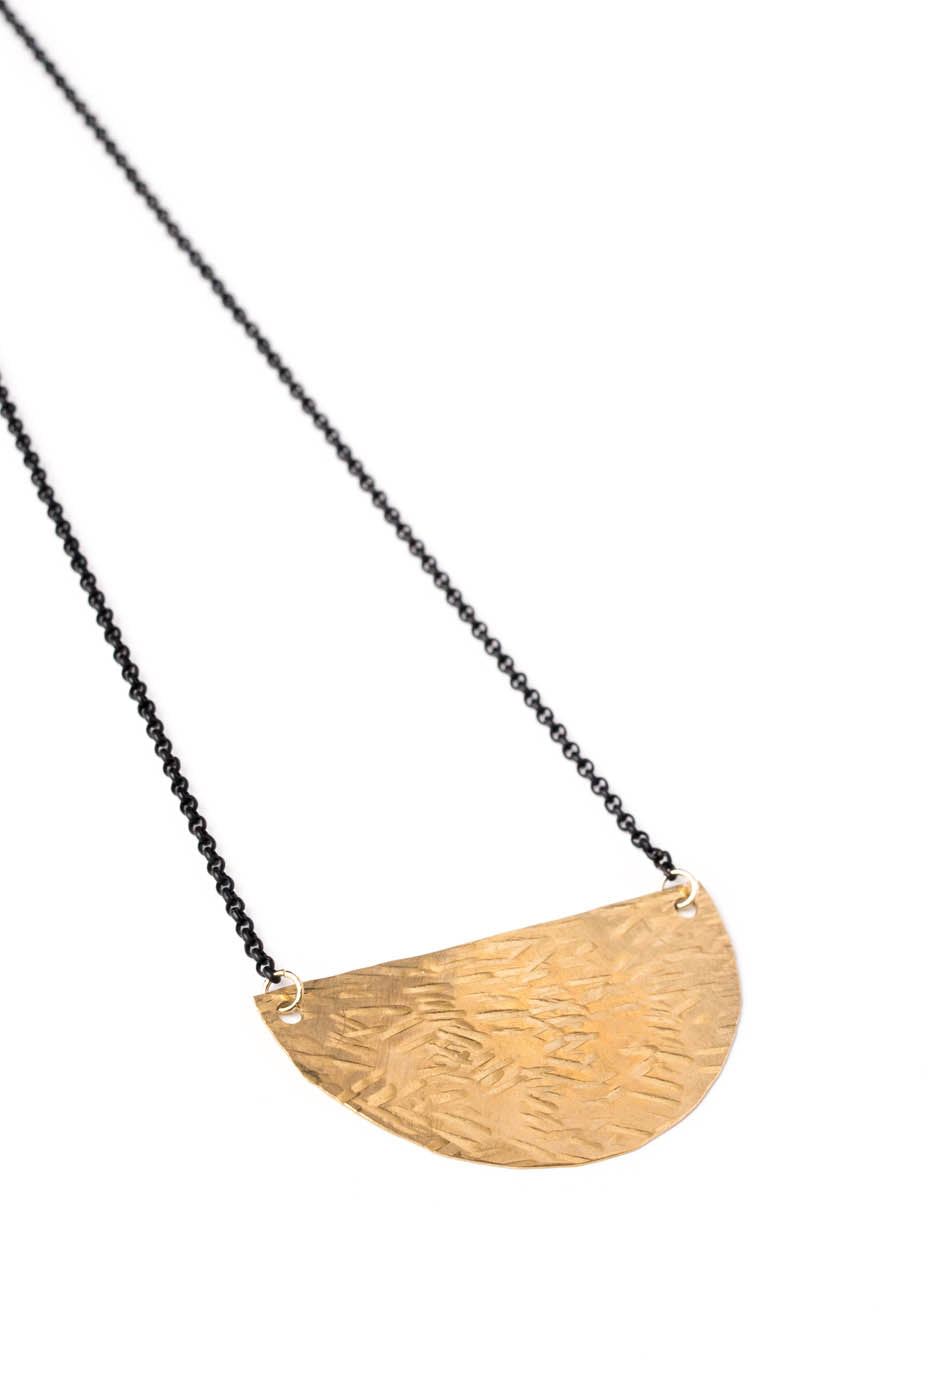 Large Brass Half Moon Necklace on Black Chain